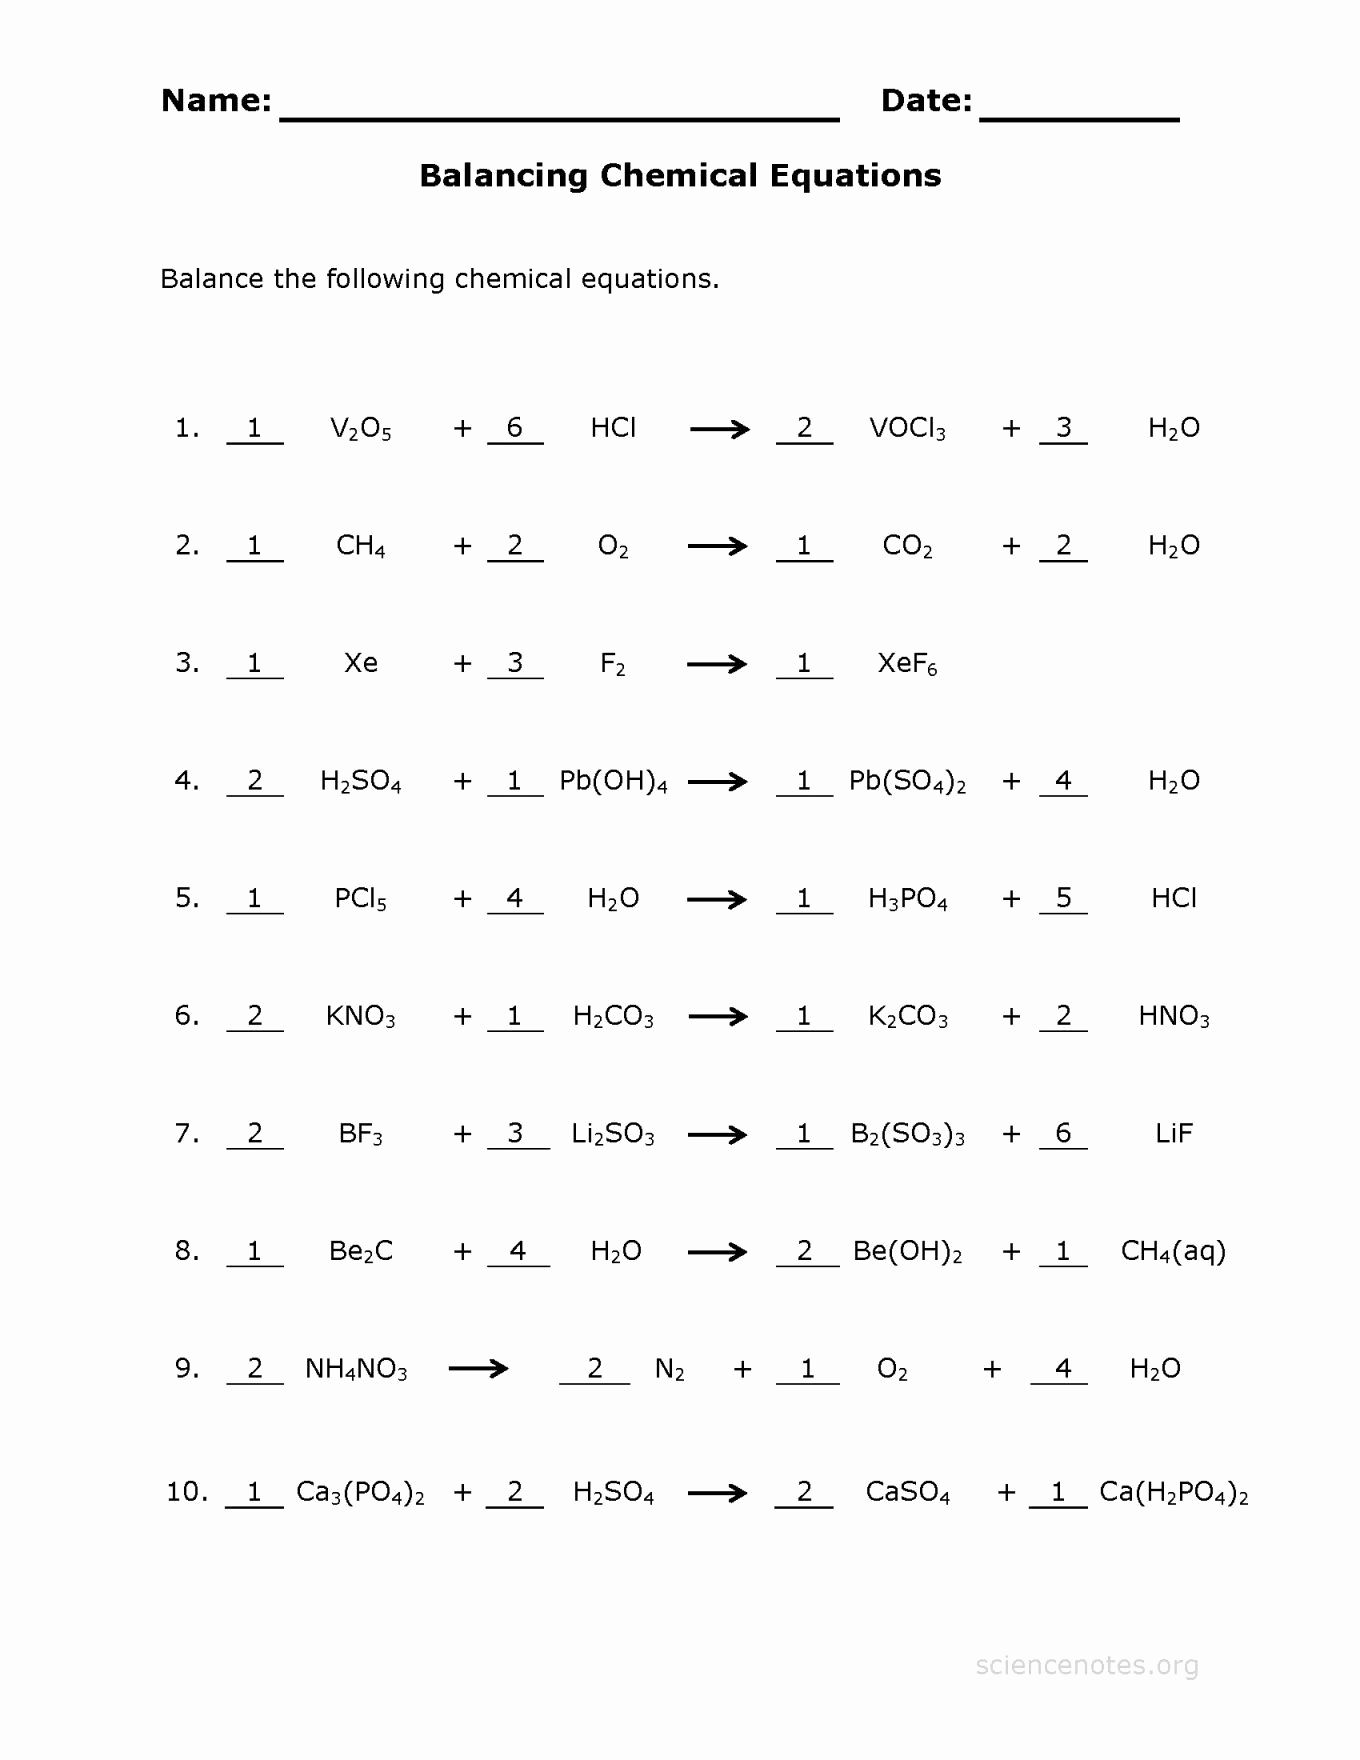 29 Constitutional Numbers Worksheet Answers